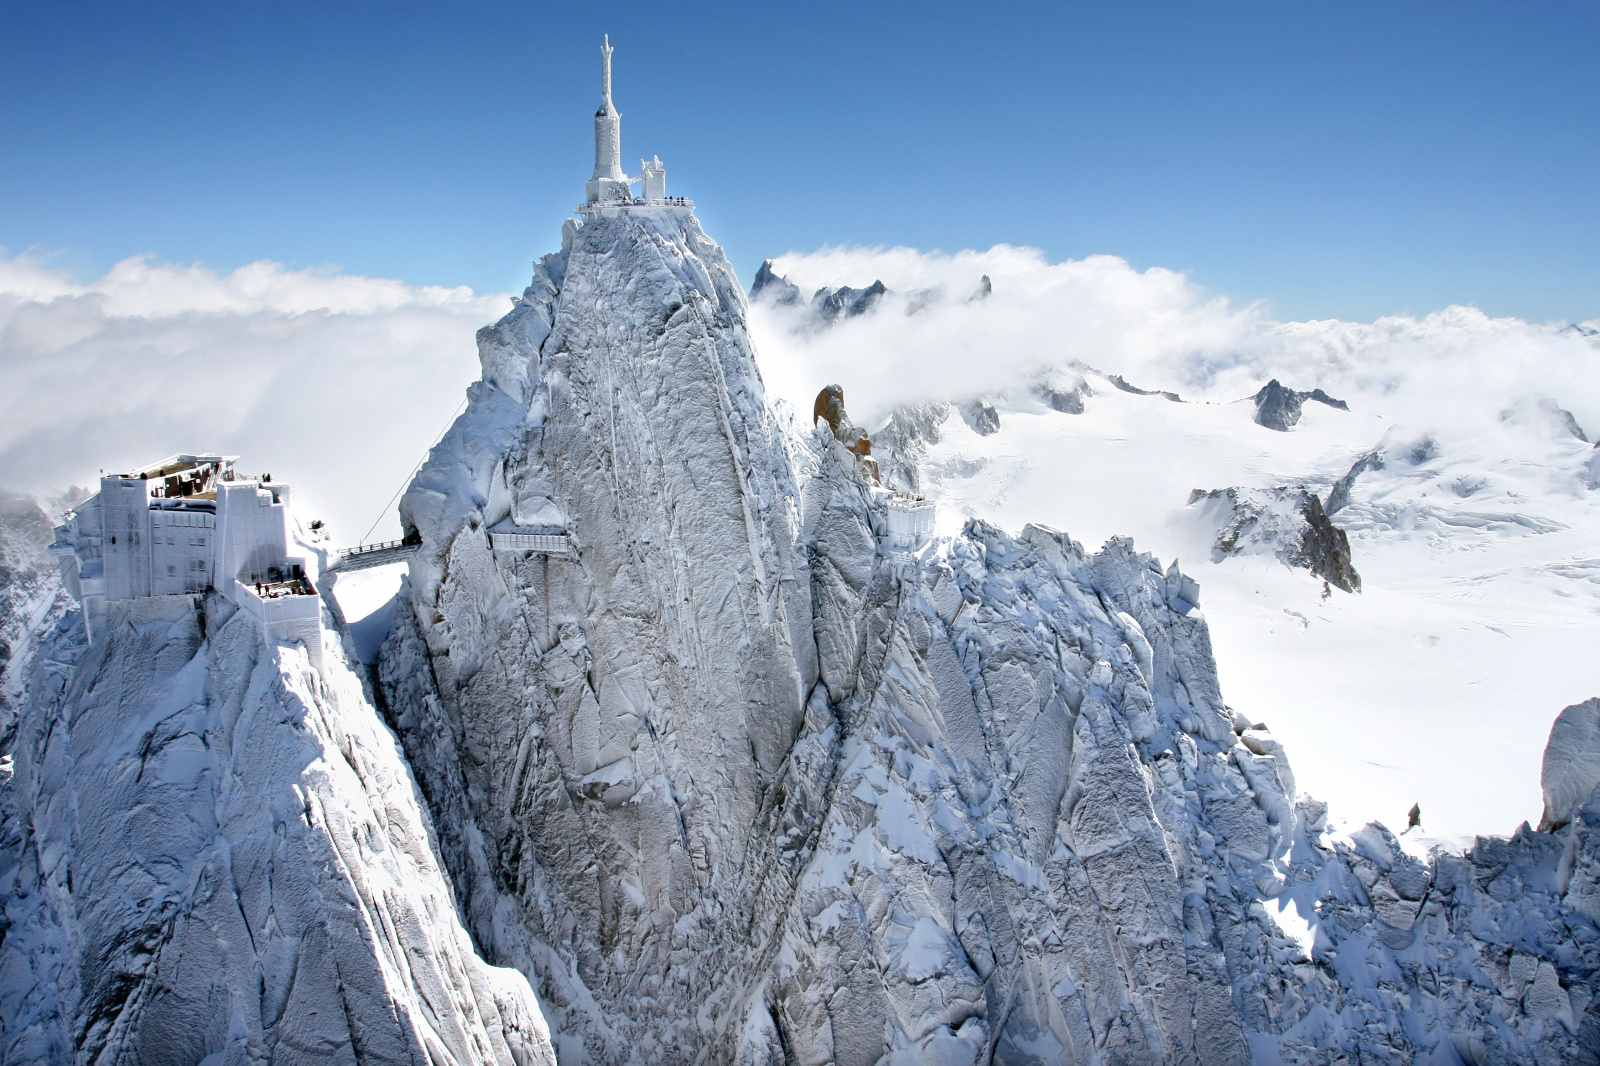 Aiguille du Midi in the snowy French Alps